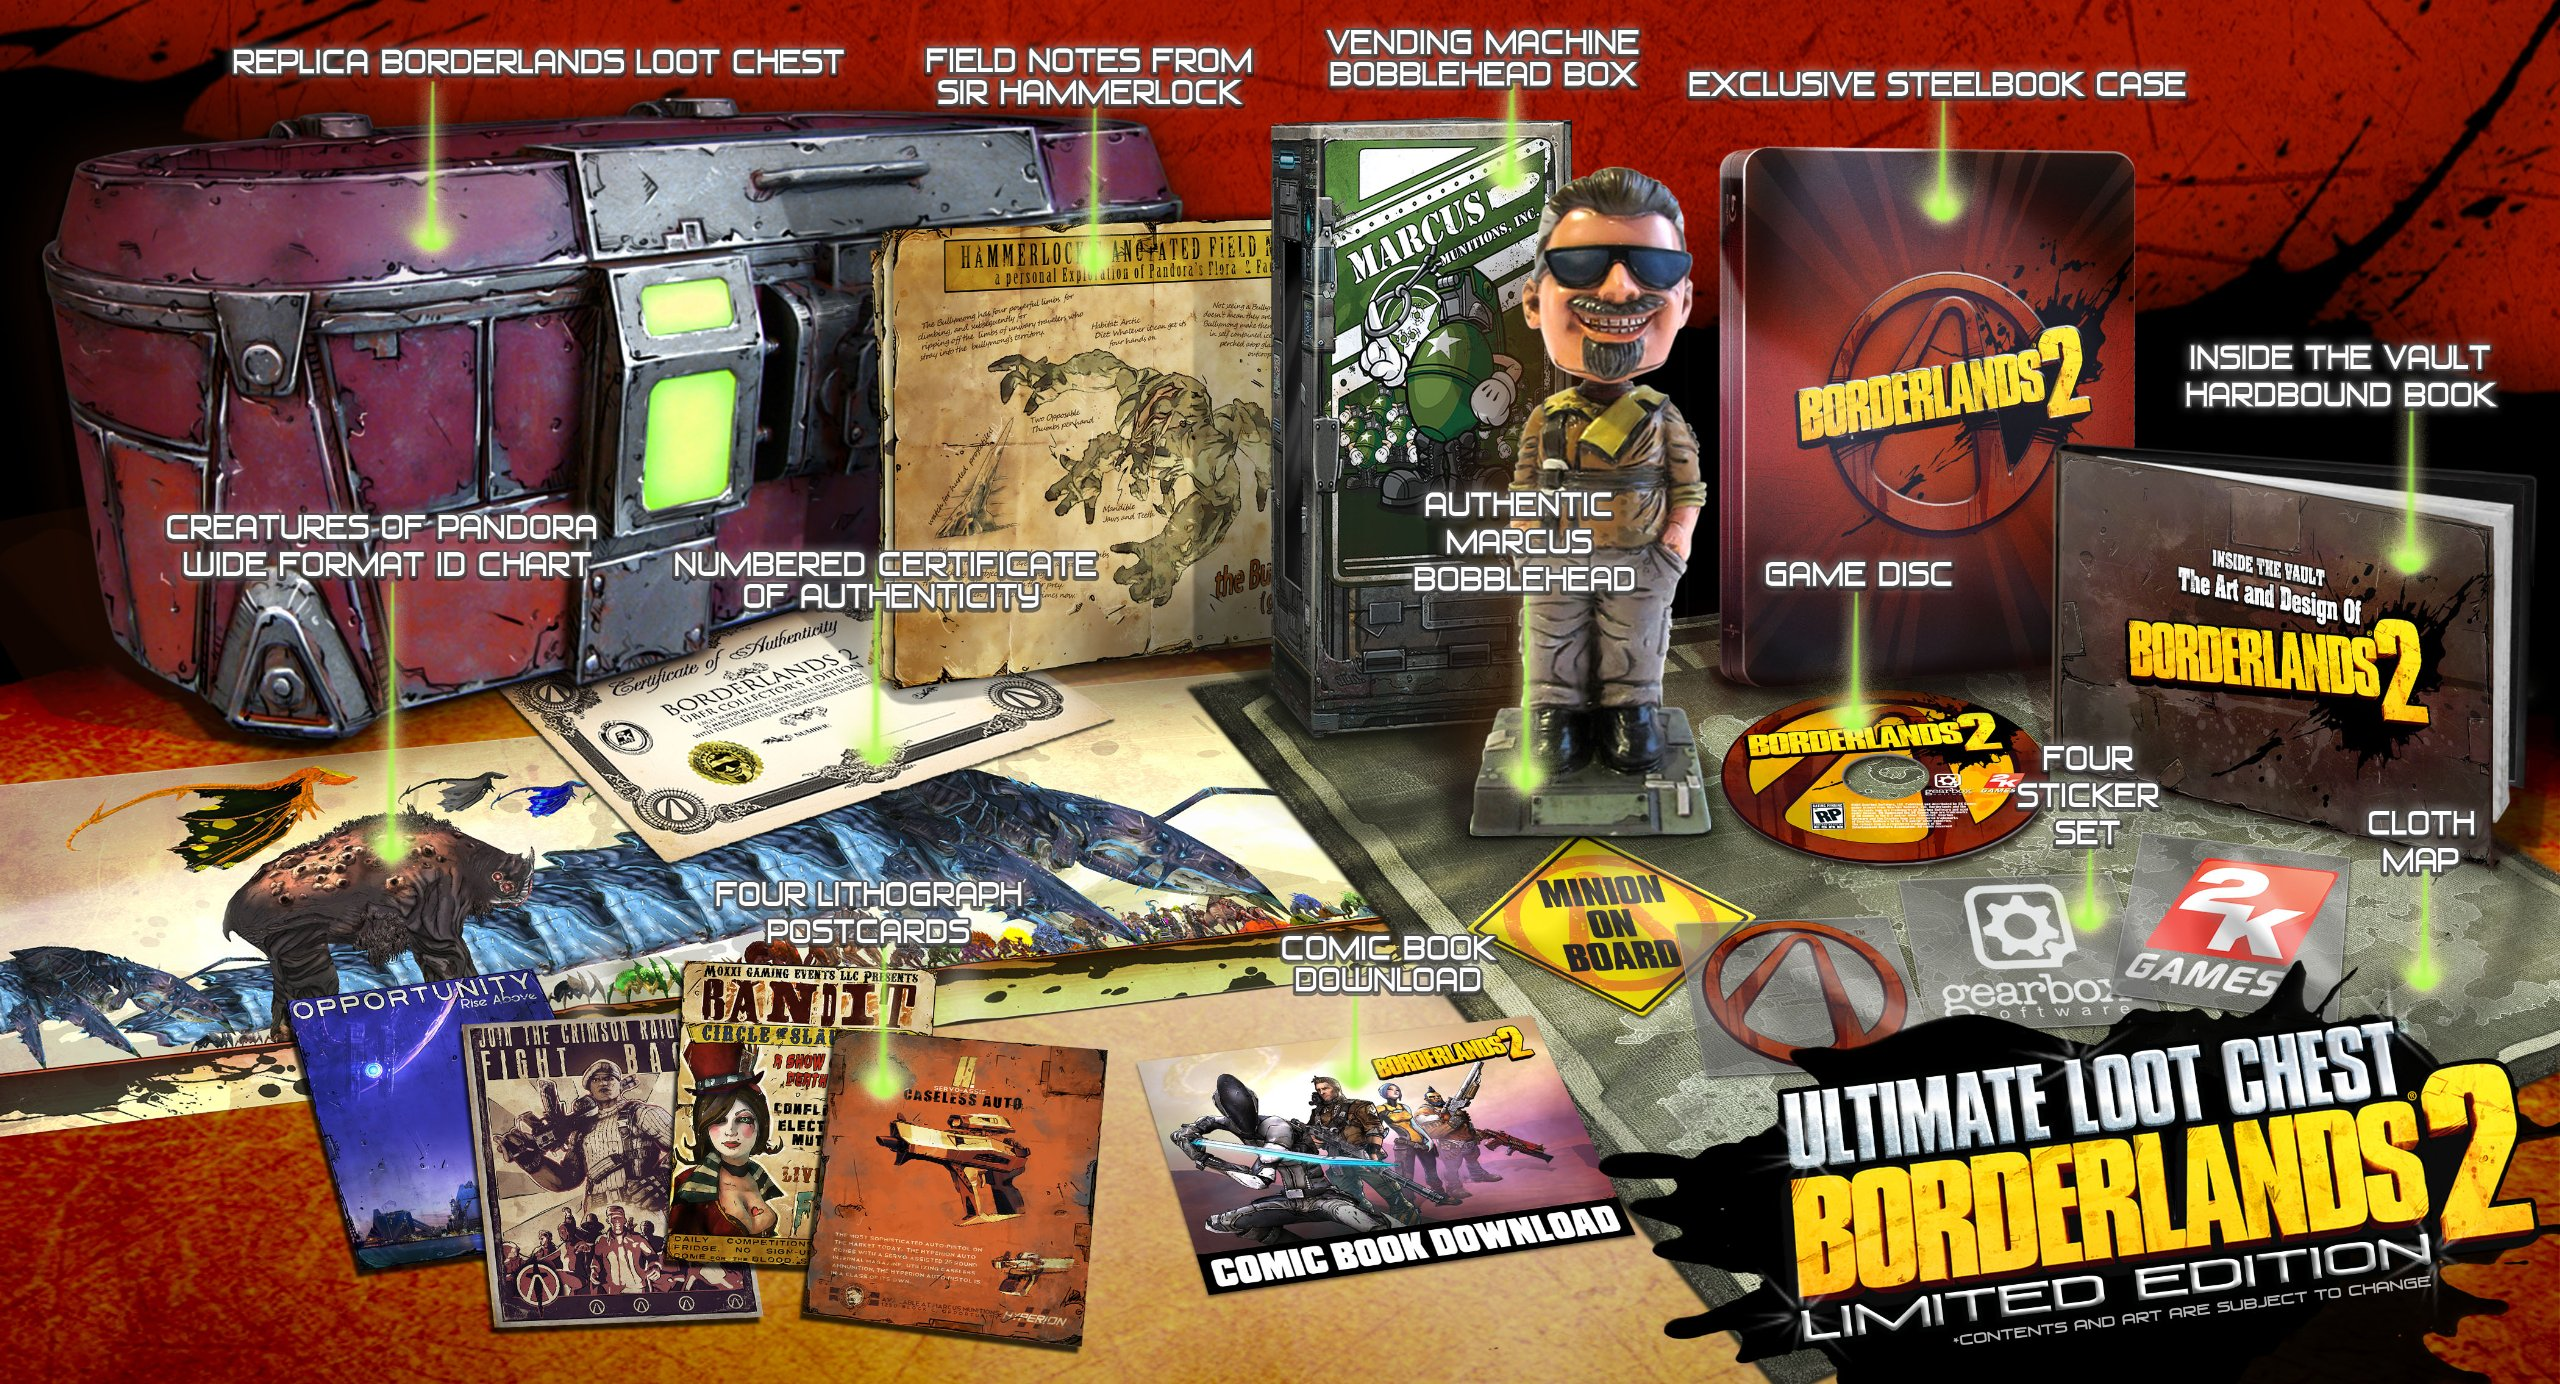 Borderlands 2 Ultimate Loot Chest Limited Edition Release Date Xbox 360 PS3 PC